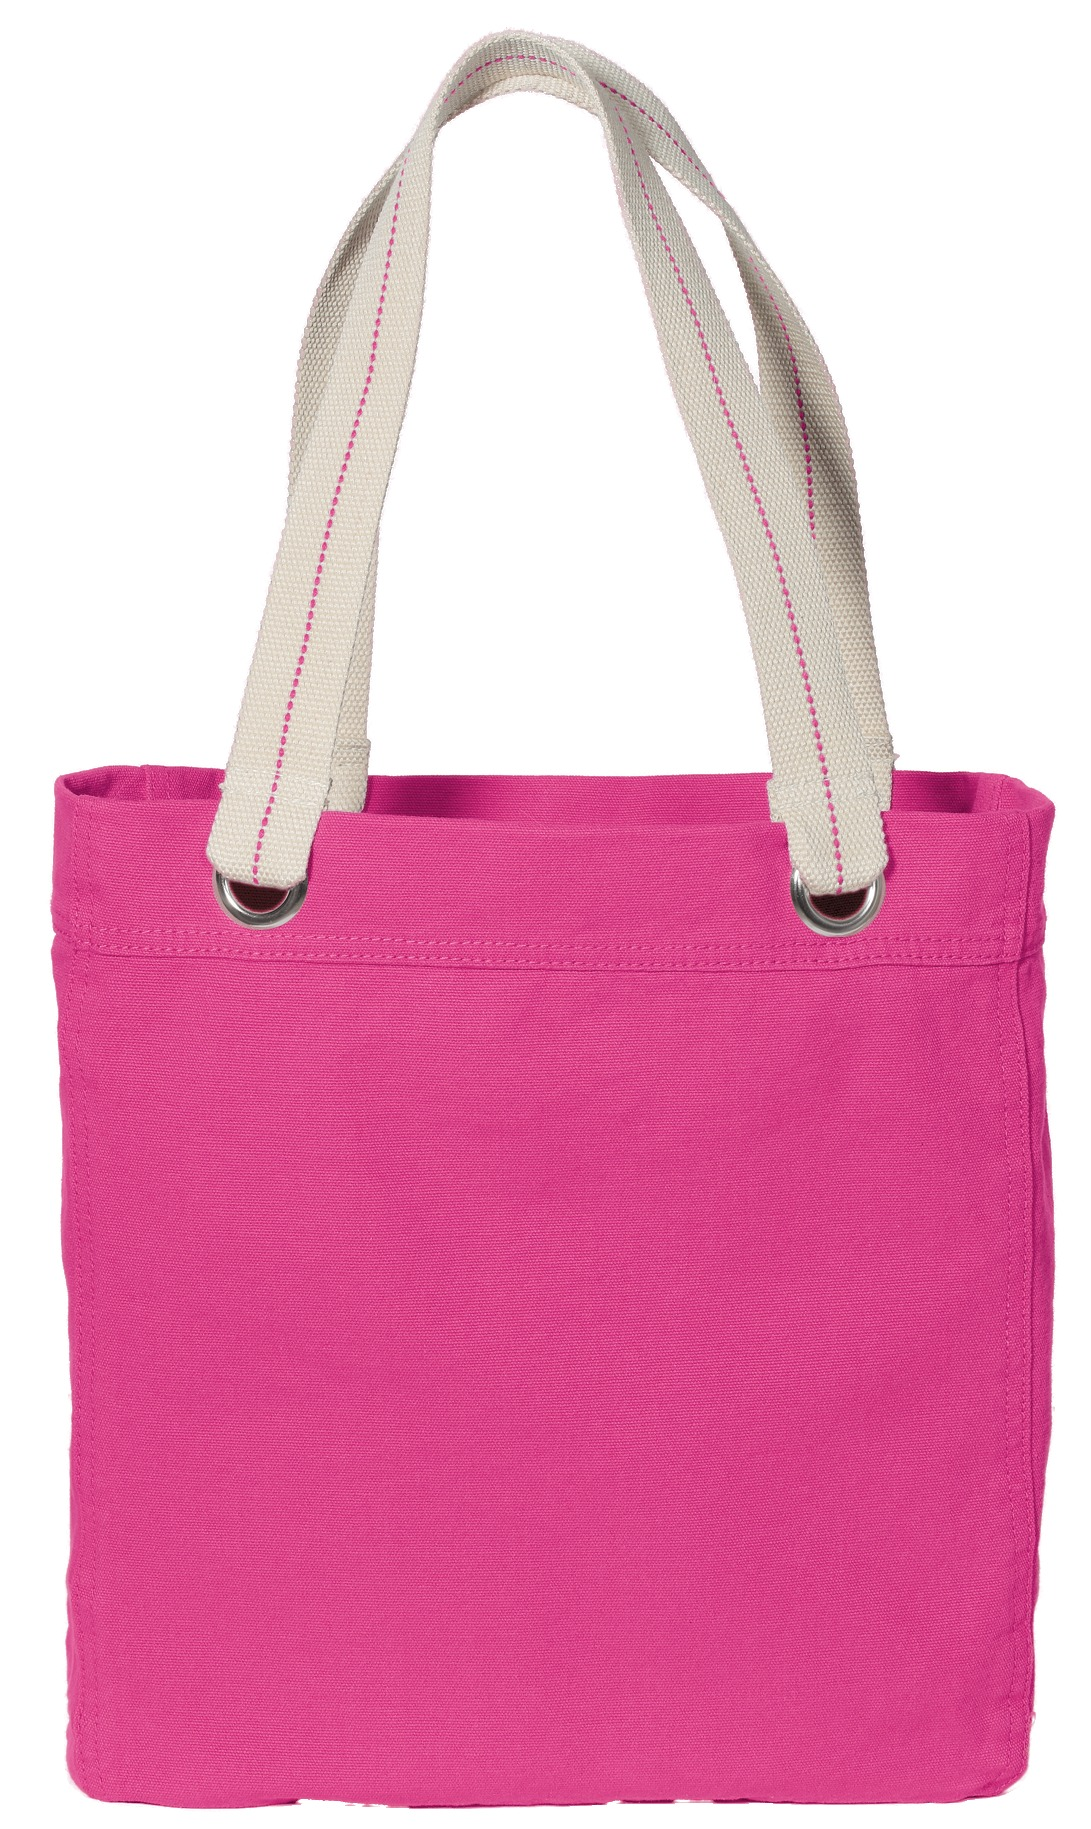 Port Authority ®  Allie Tote. B118 - Tropical Pink/ Chocolate